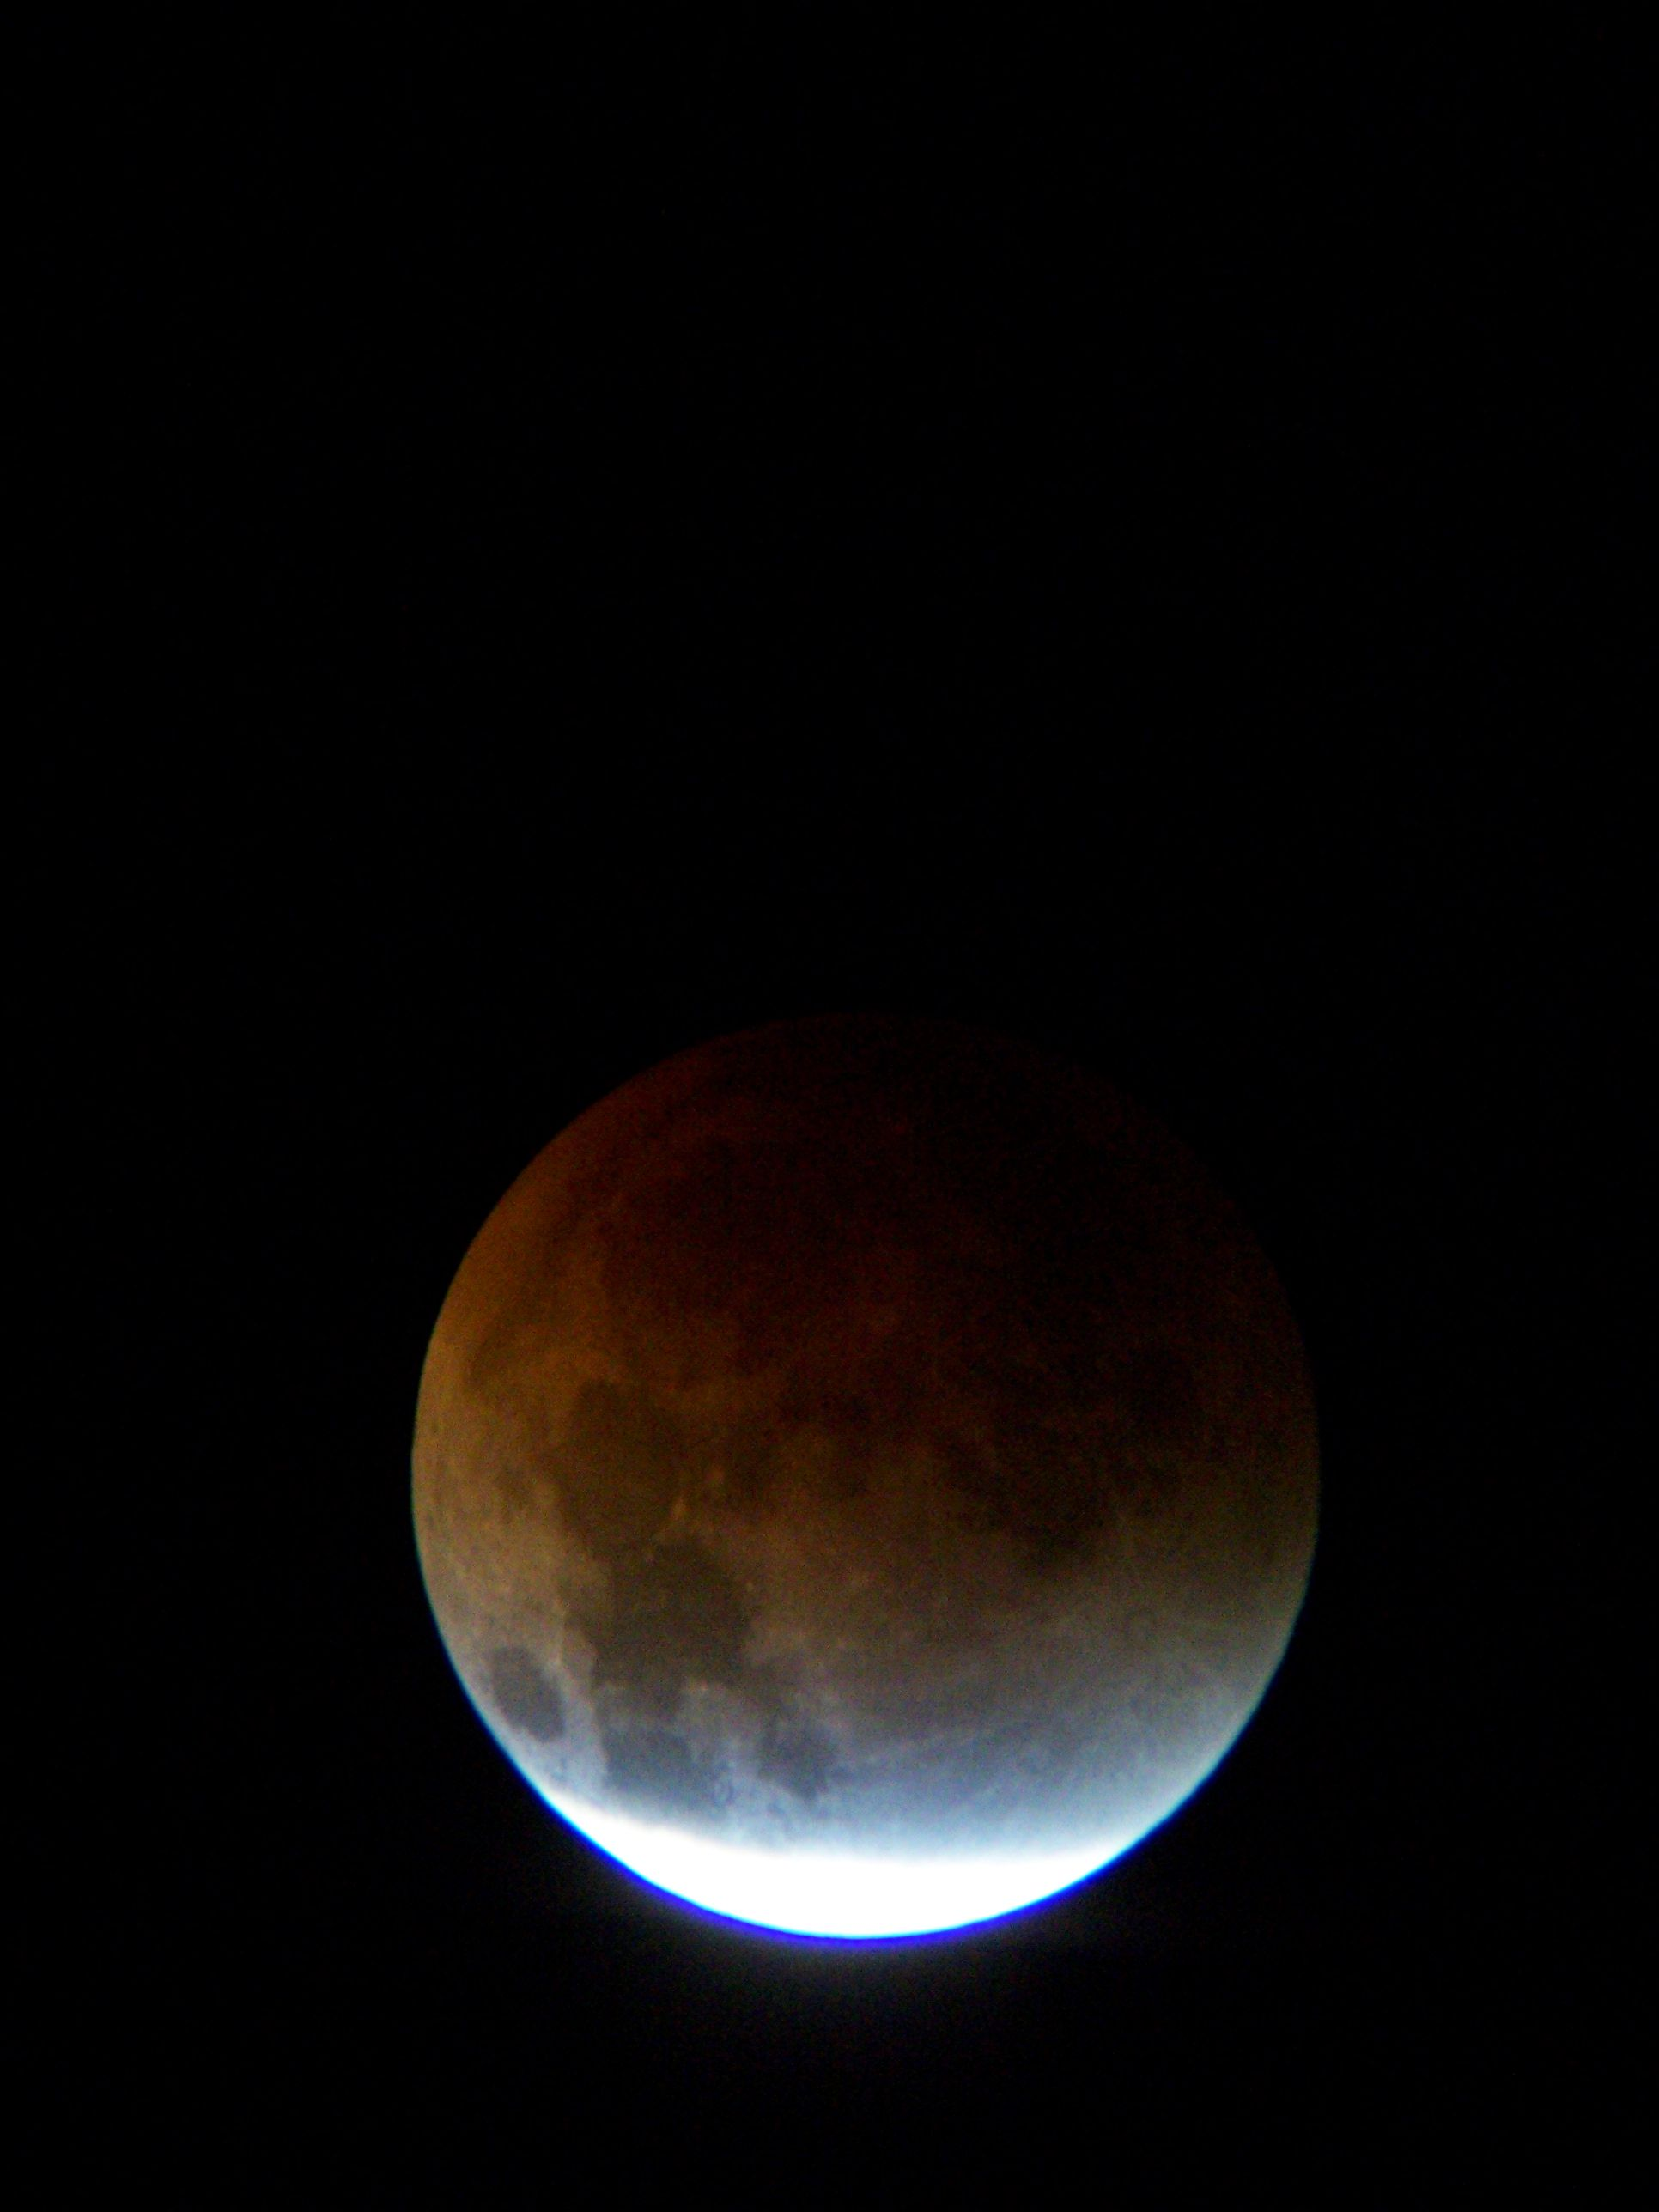 Images From The Aug. 28, 2007, Lunar Eclipse